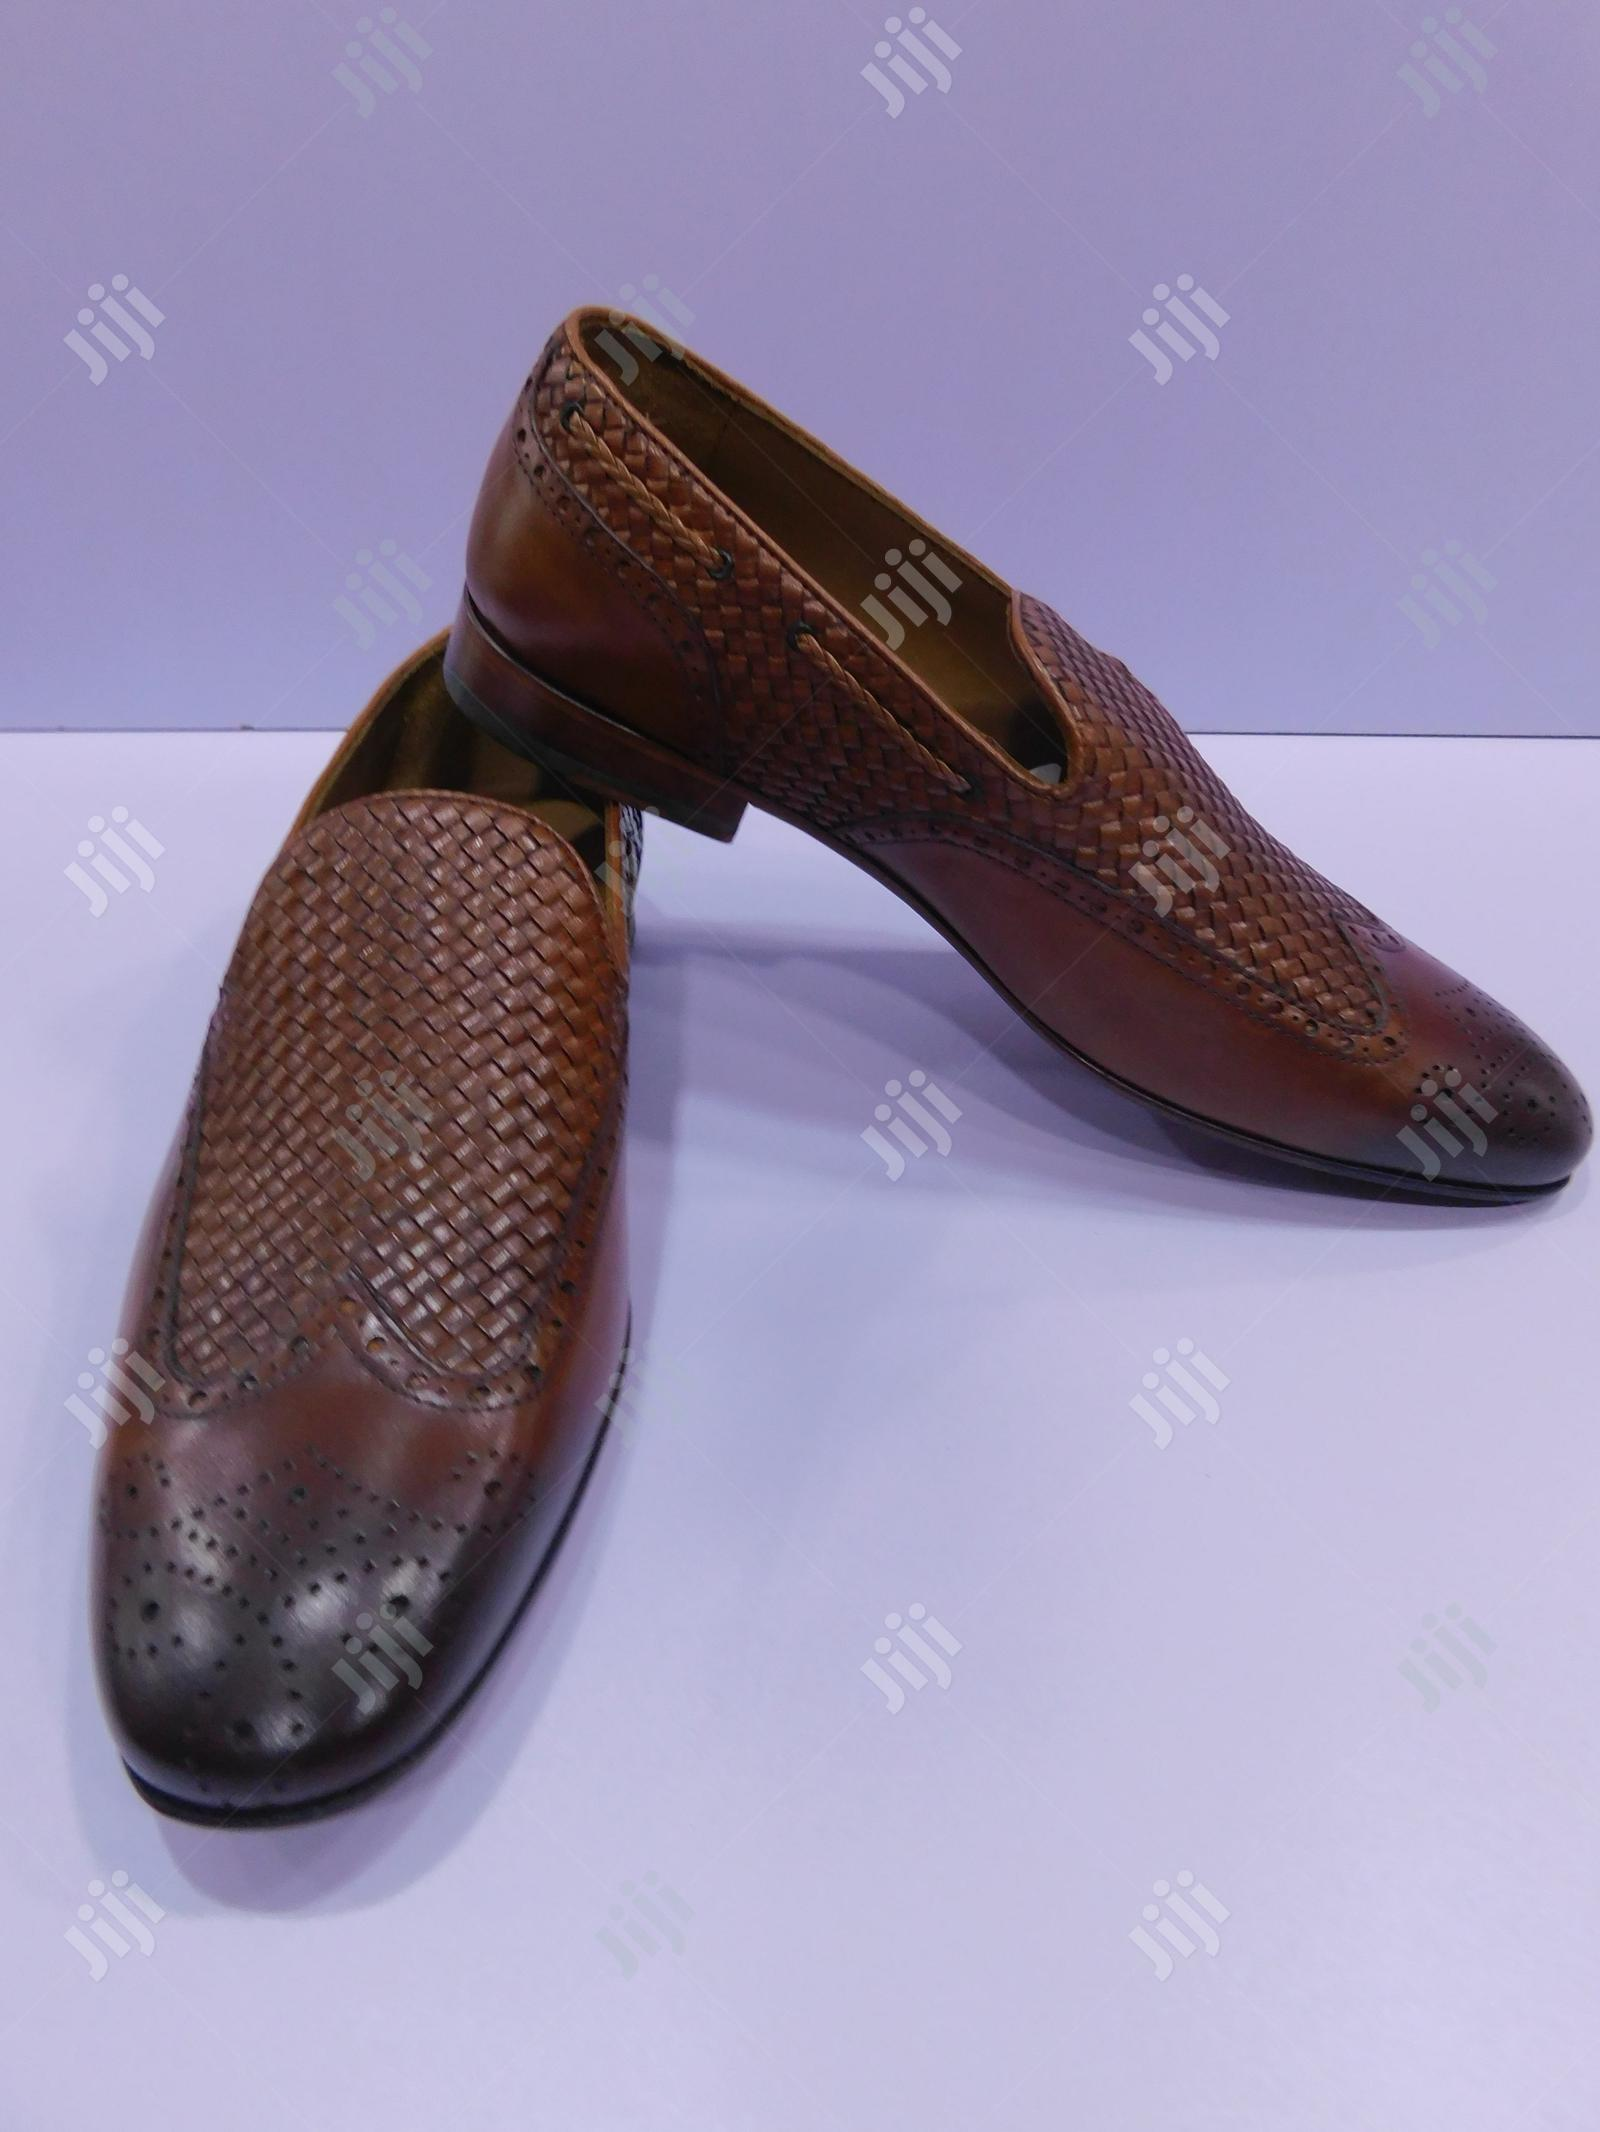 KHARD Coporate Men Shoes